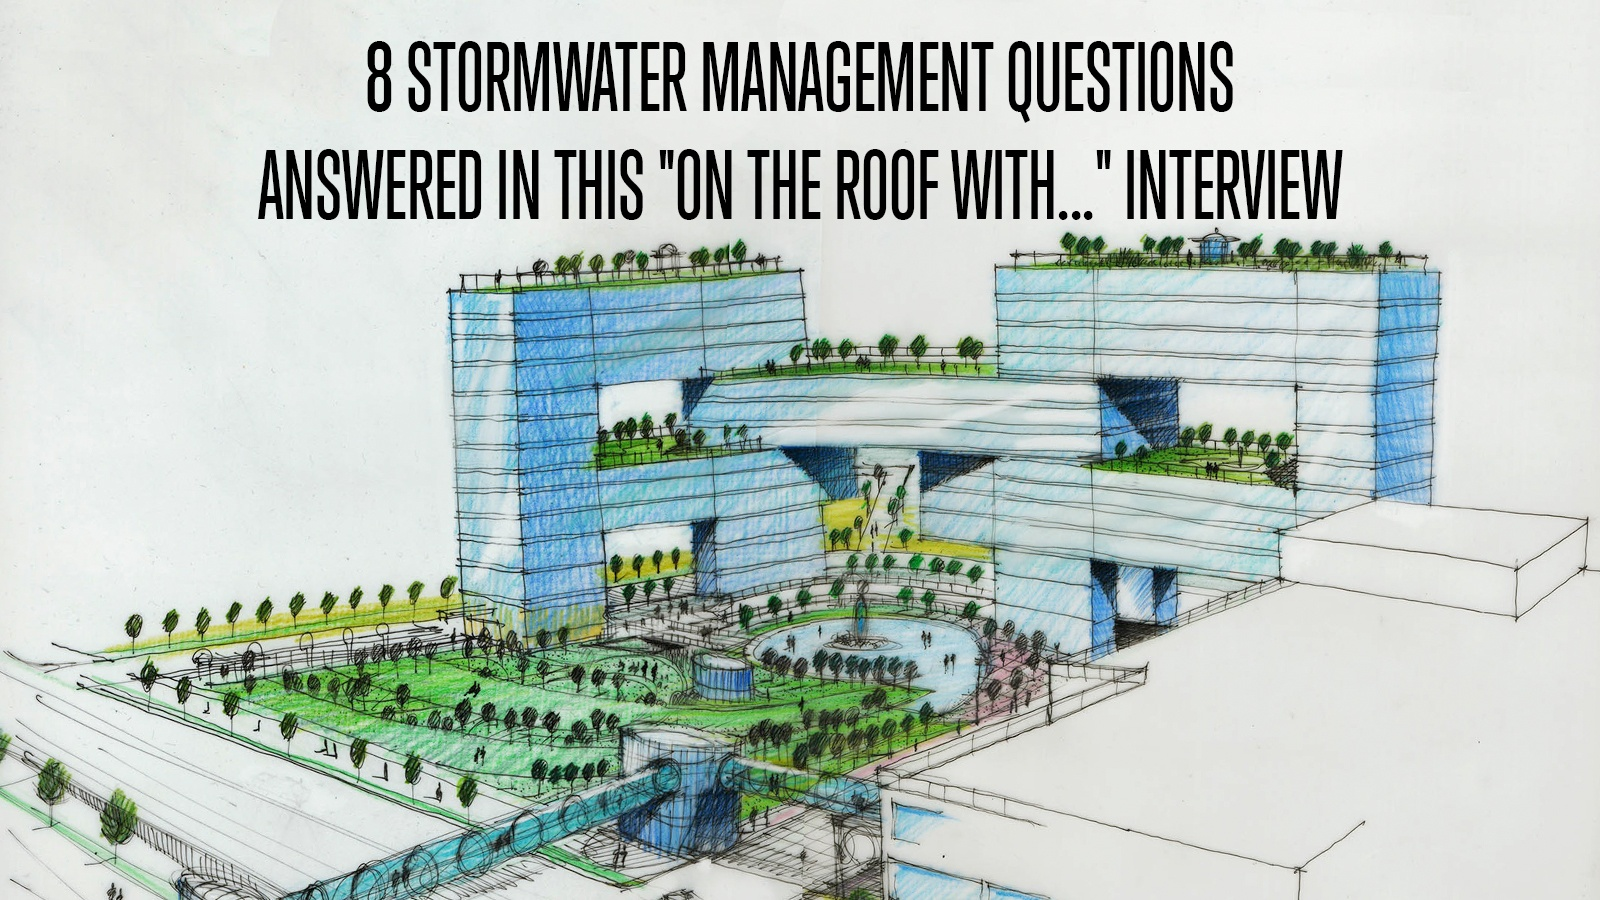 8 Stormwater Management Questions Answered